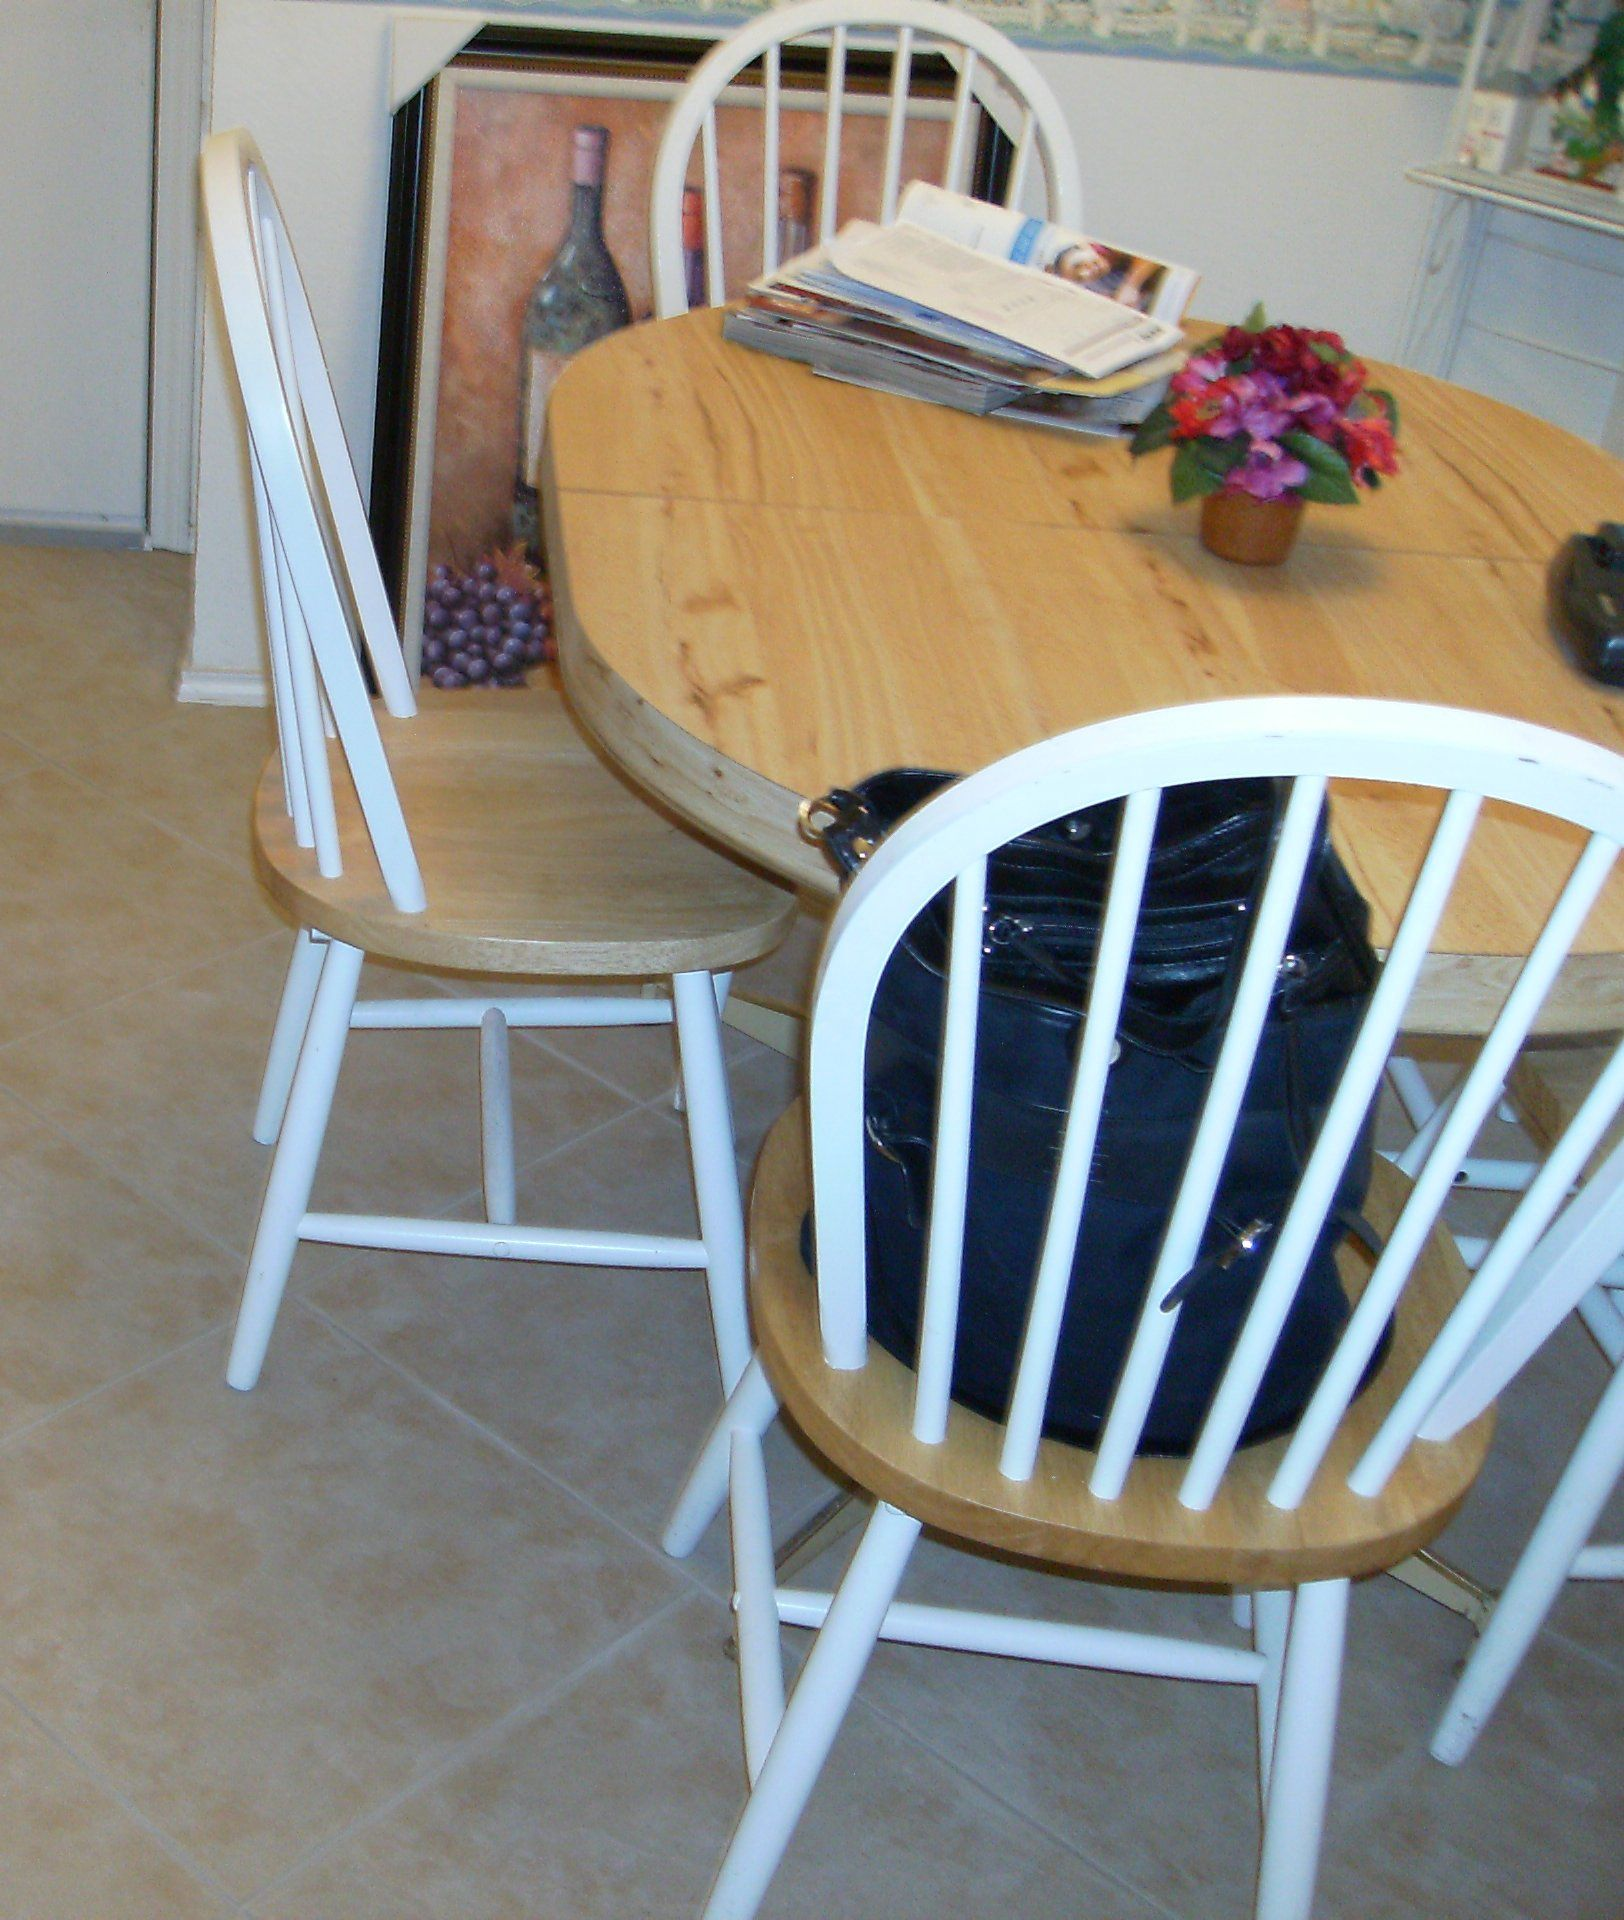 Kitchen Table and Chairs in Redecorated's Garage Sale in Fort Worth , TX for $100. Butcher Block Table with Leaf and 4 Butcher block and White Chairs.